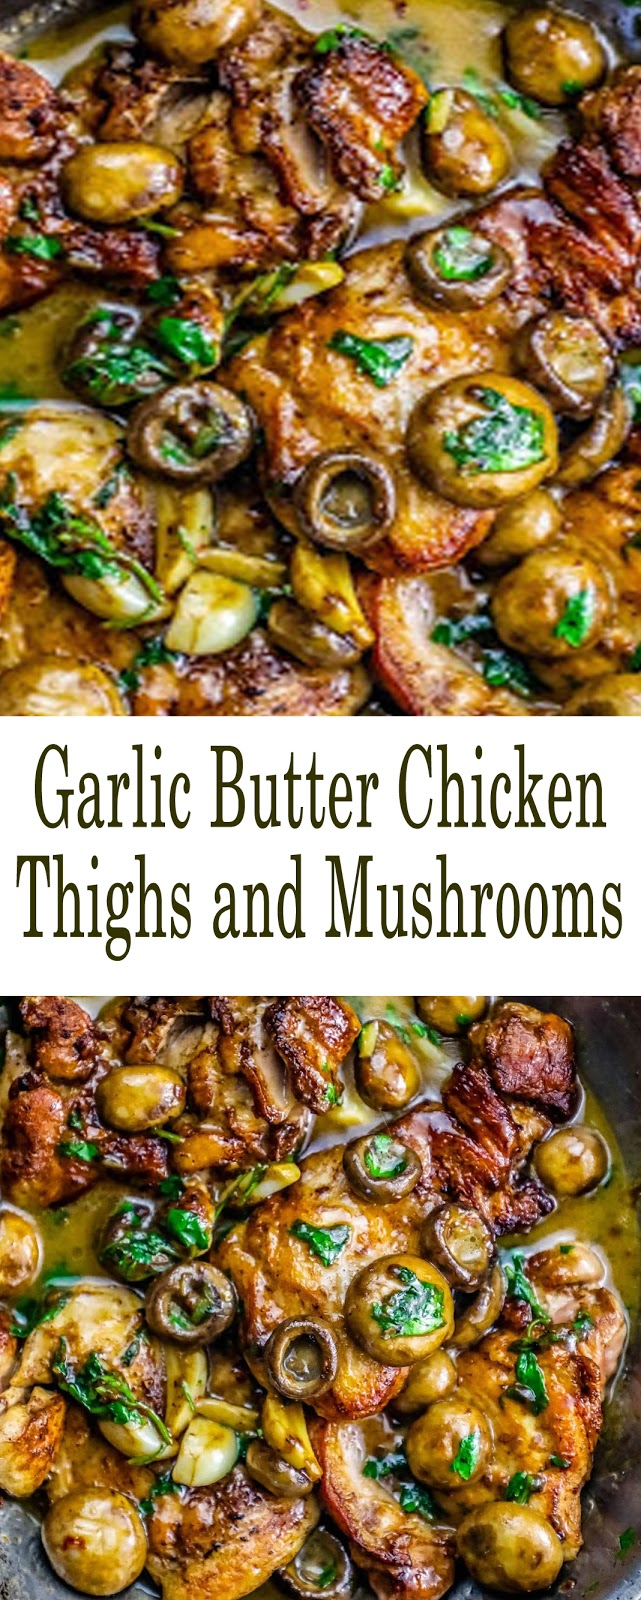 Garlic Butter Chicken Thighs and Mushrooms